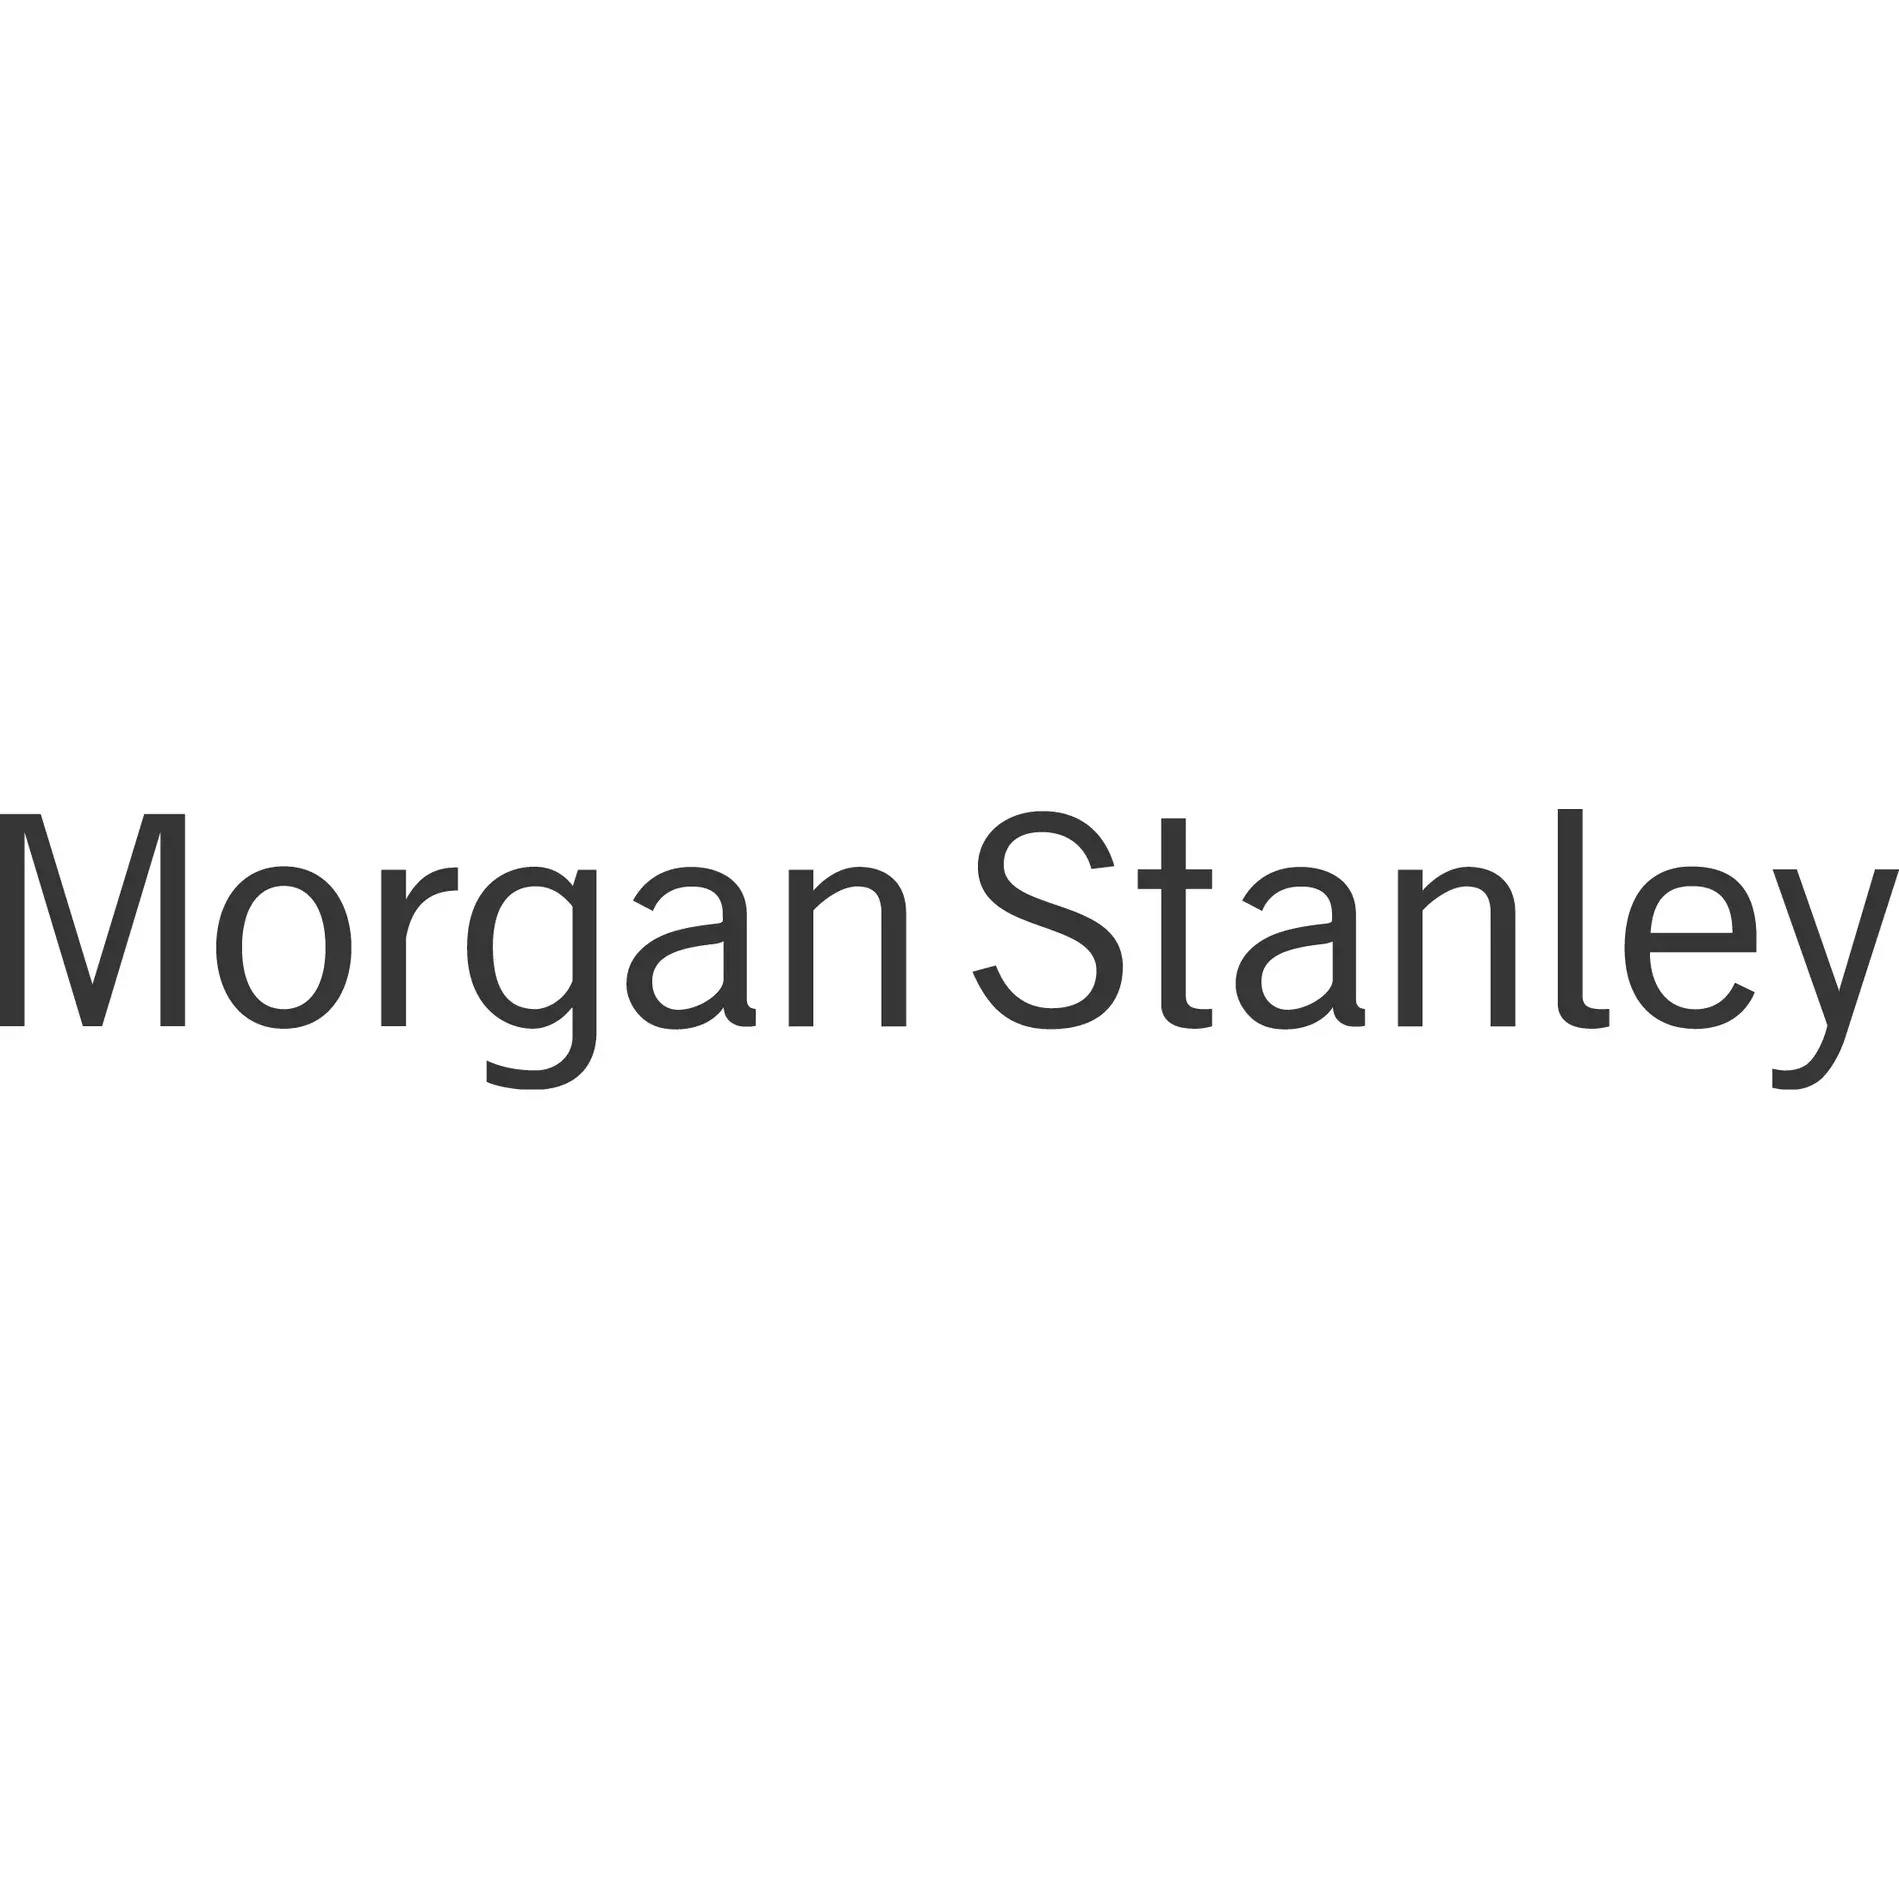 Zahrn Keck Group - Morgan Stanley